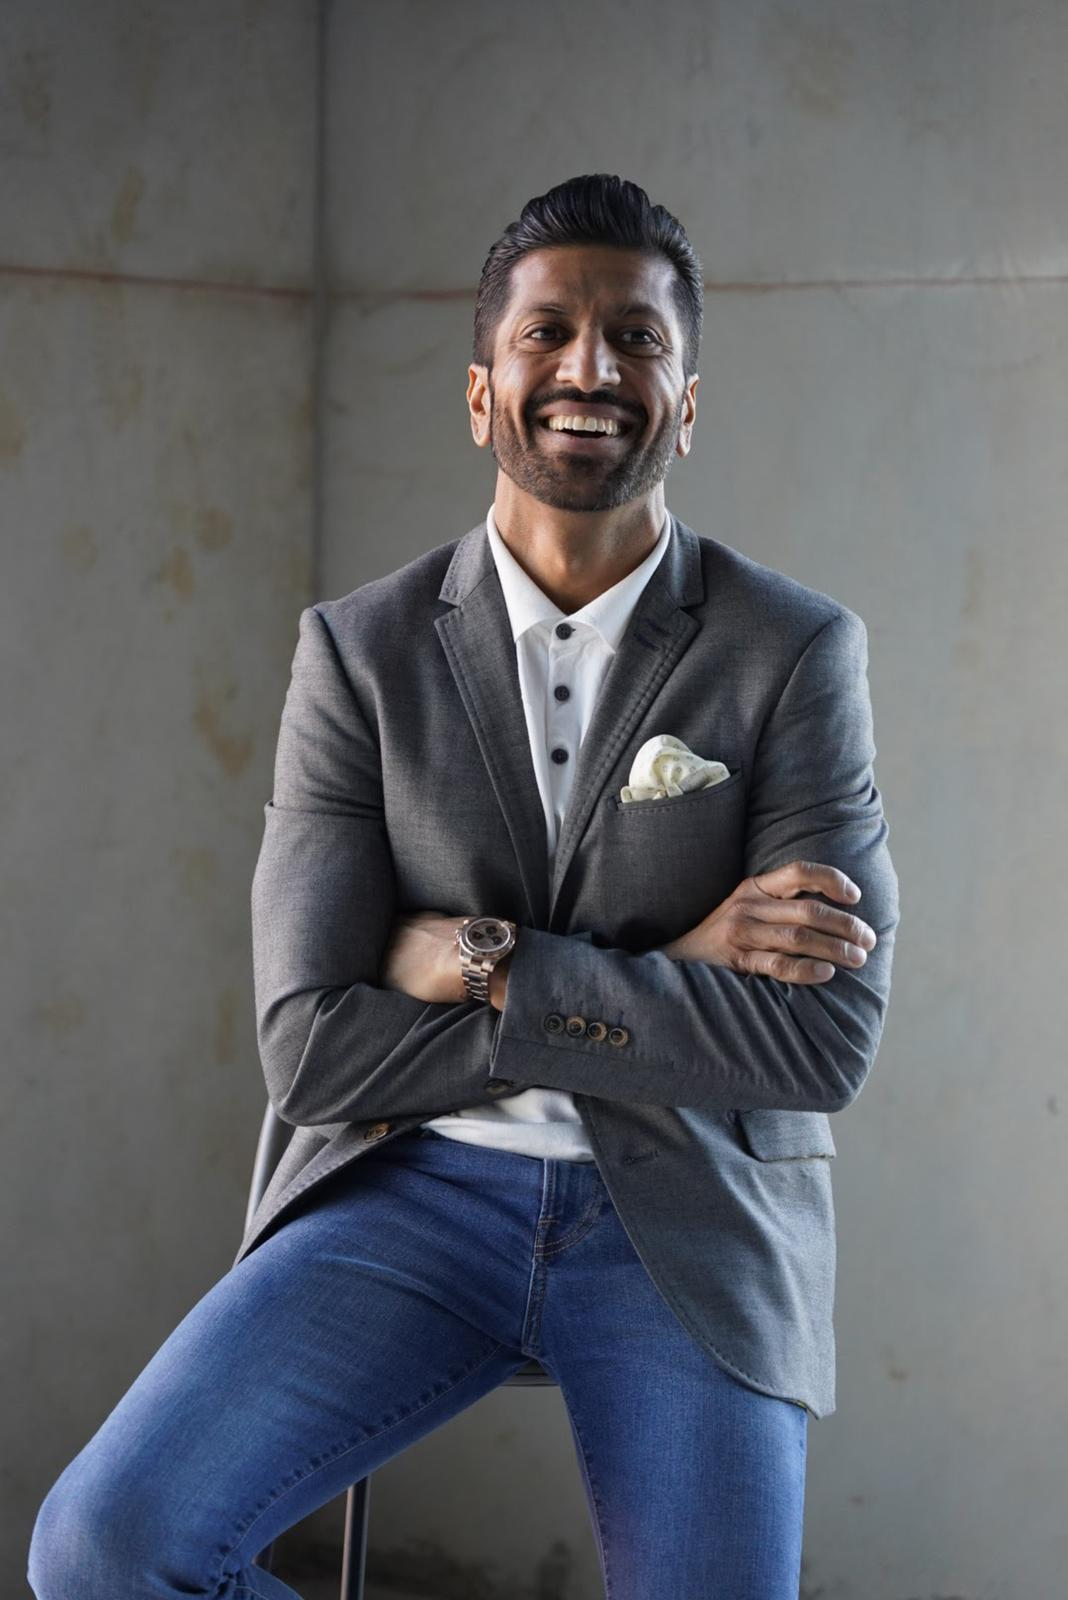 Meet Rahul Patel, Attorney by Trade, Entrepreneur by Practice